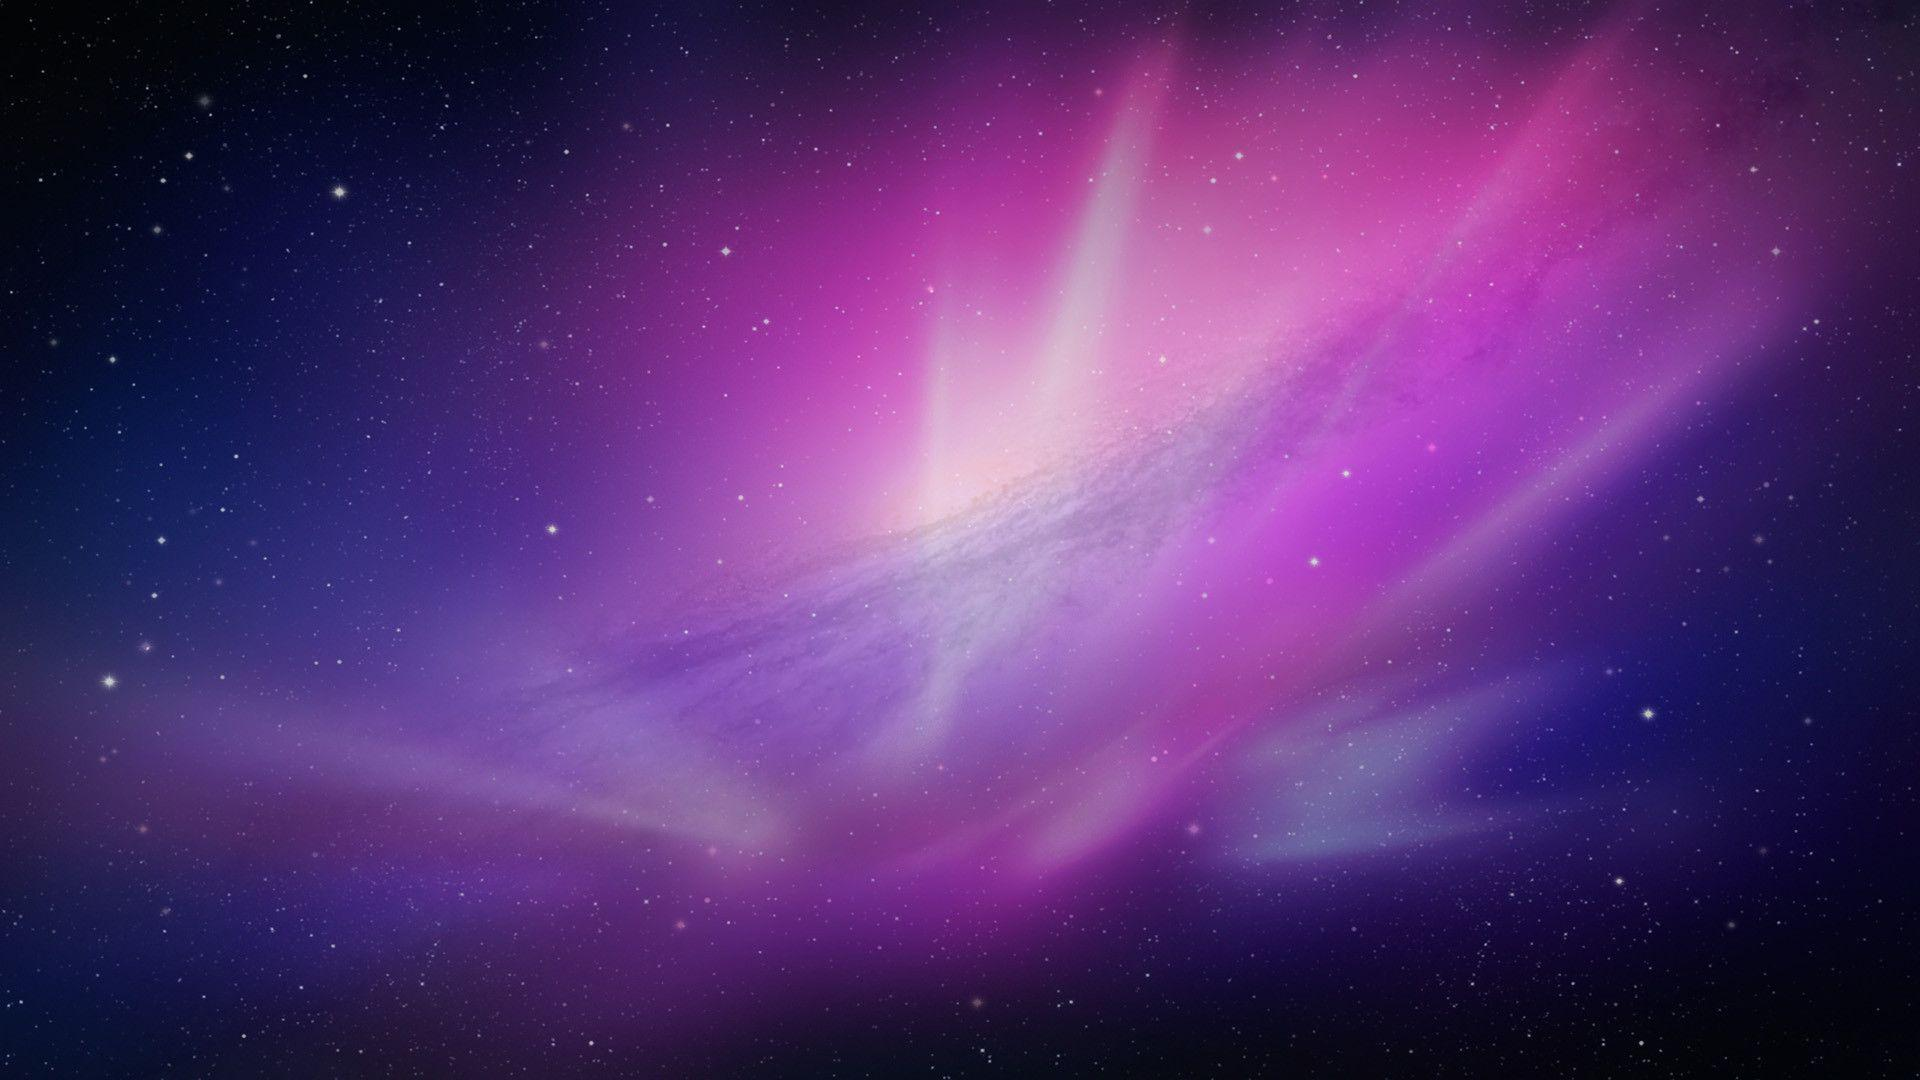 Mac os x hd wallpapers wallpaper cave for Raumgestaltung mac os x